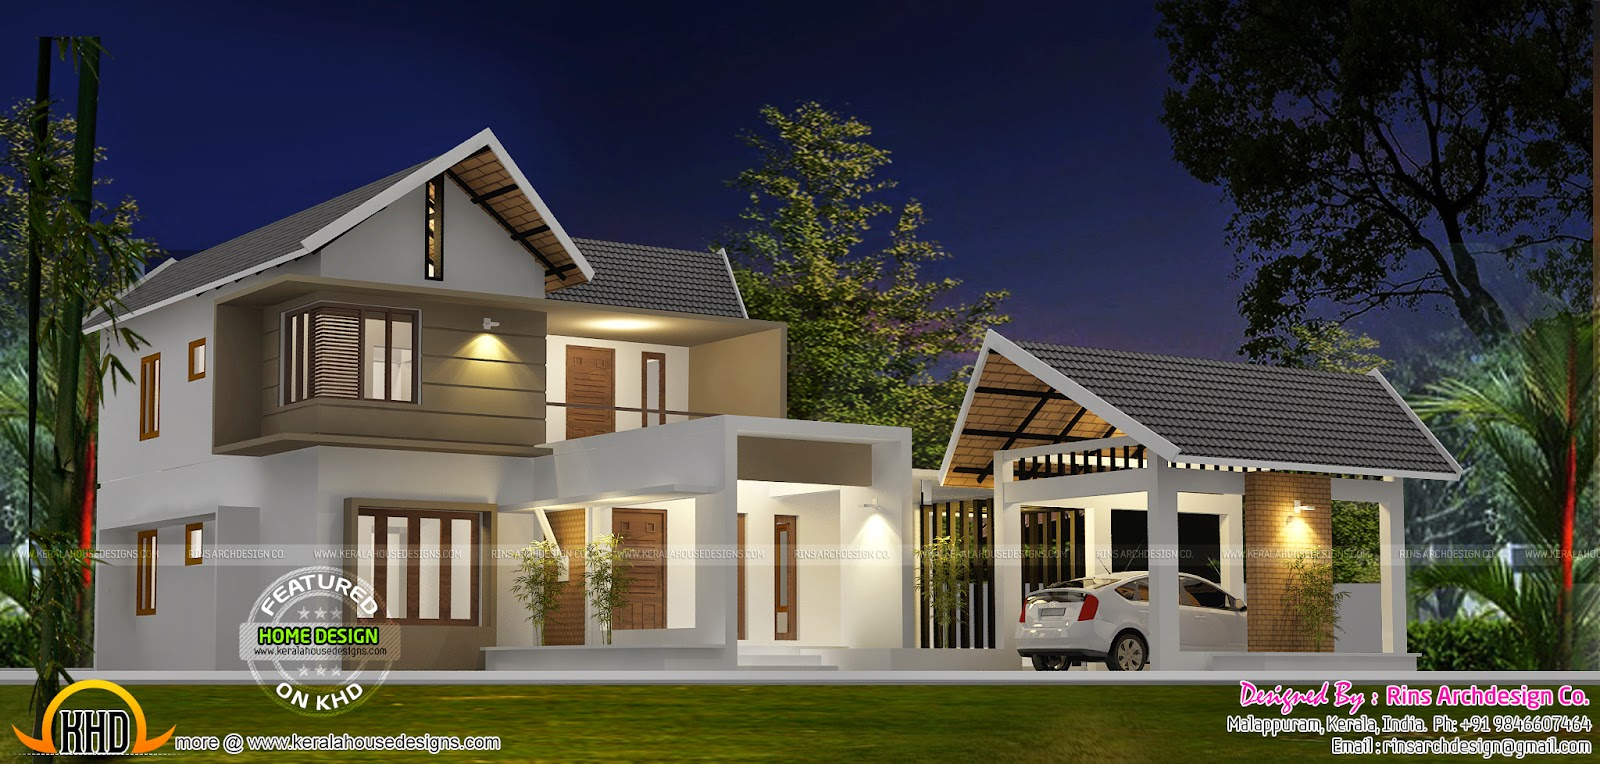 Separate garage house plan kerala home design and floor for Home design pictures